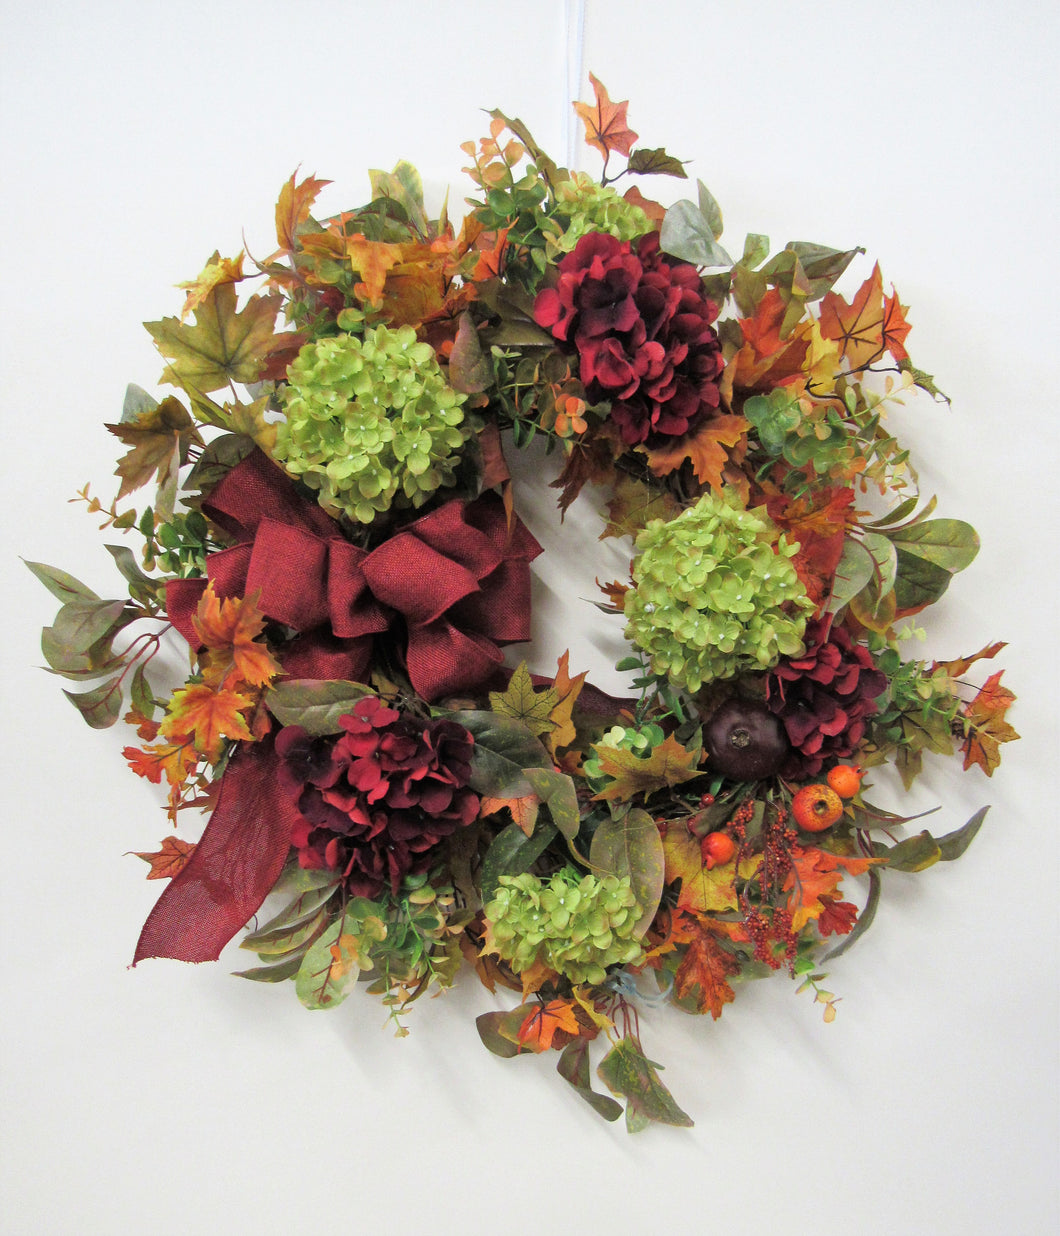 Gallery/Harv159 - April's Garden Wreath